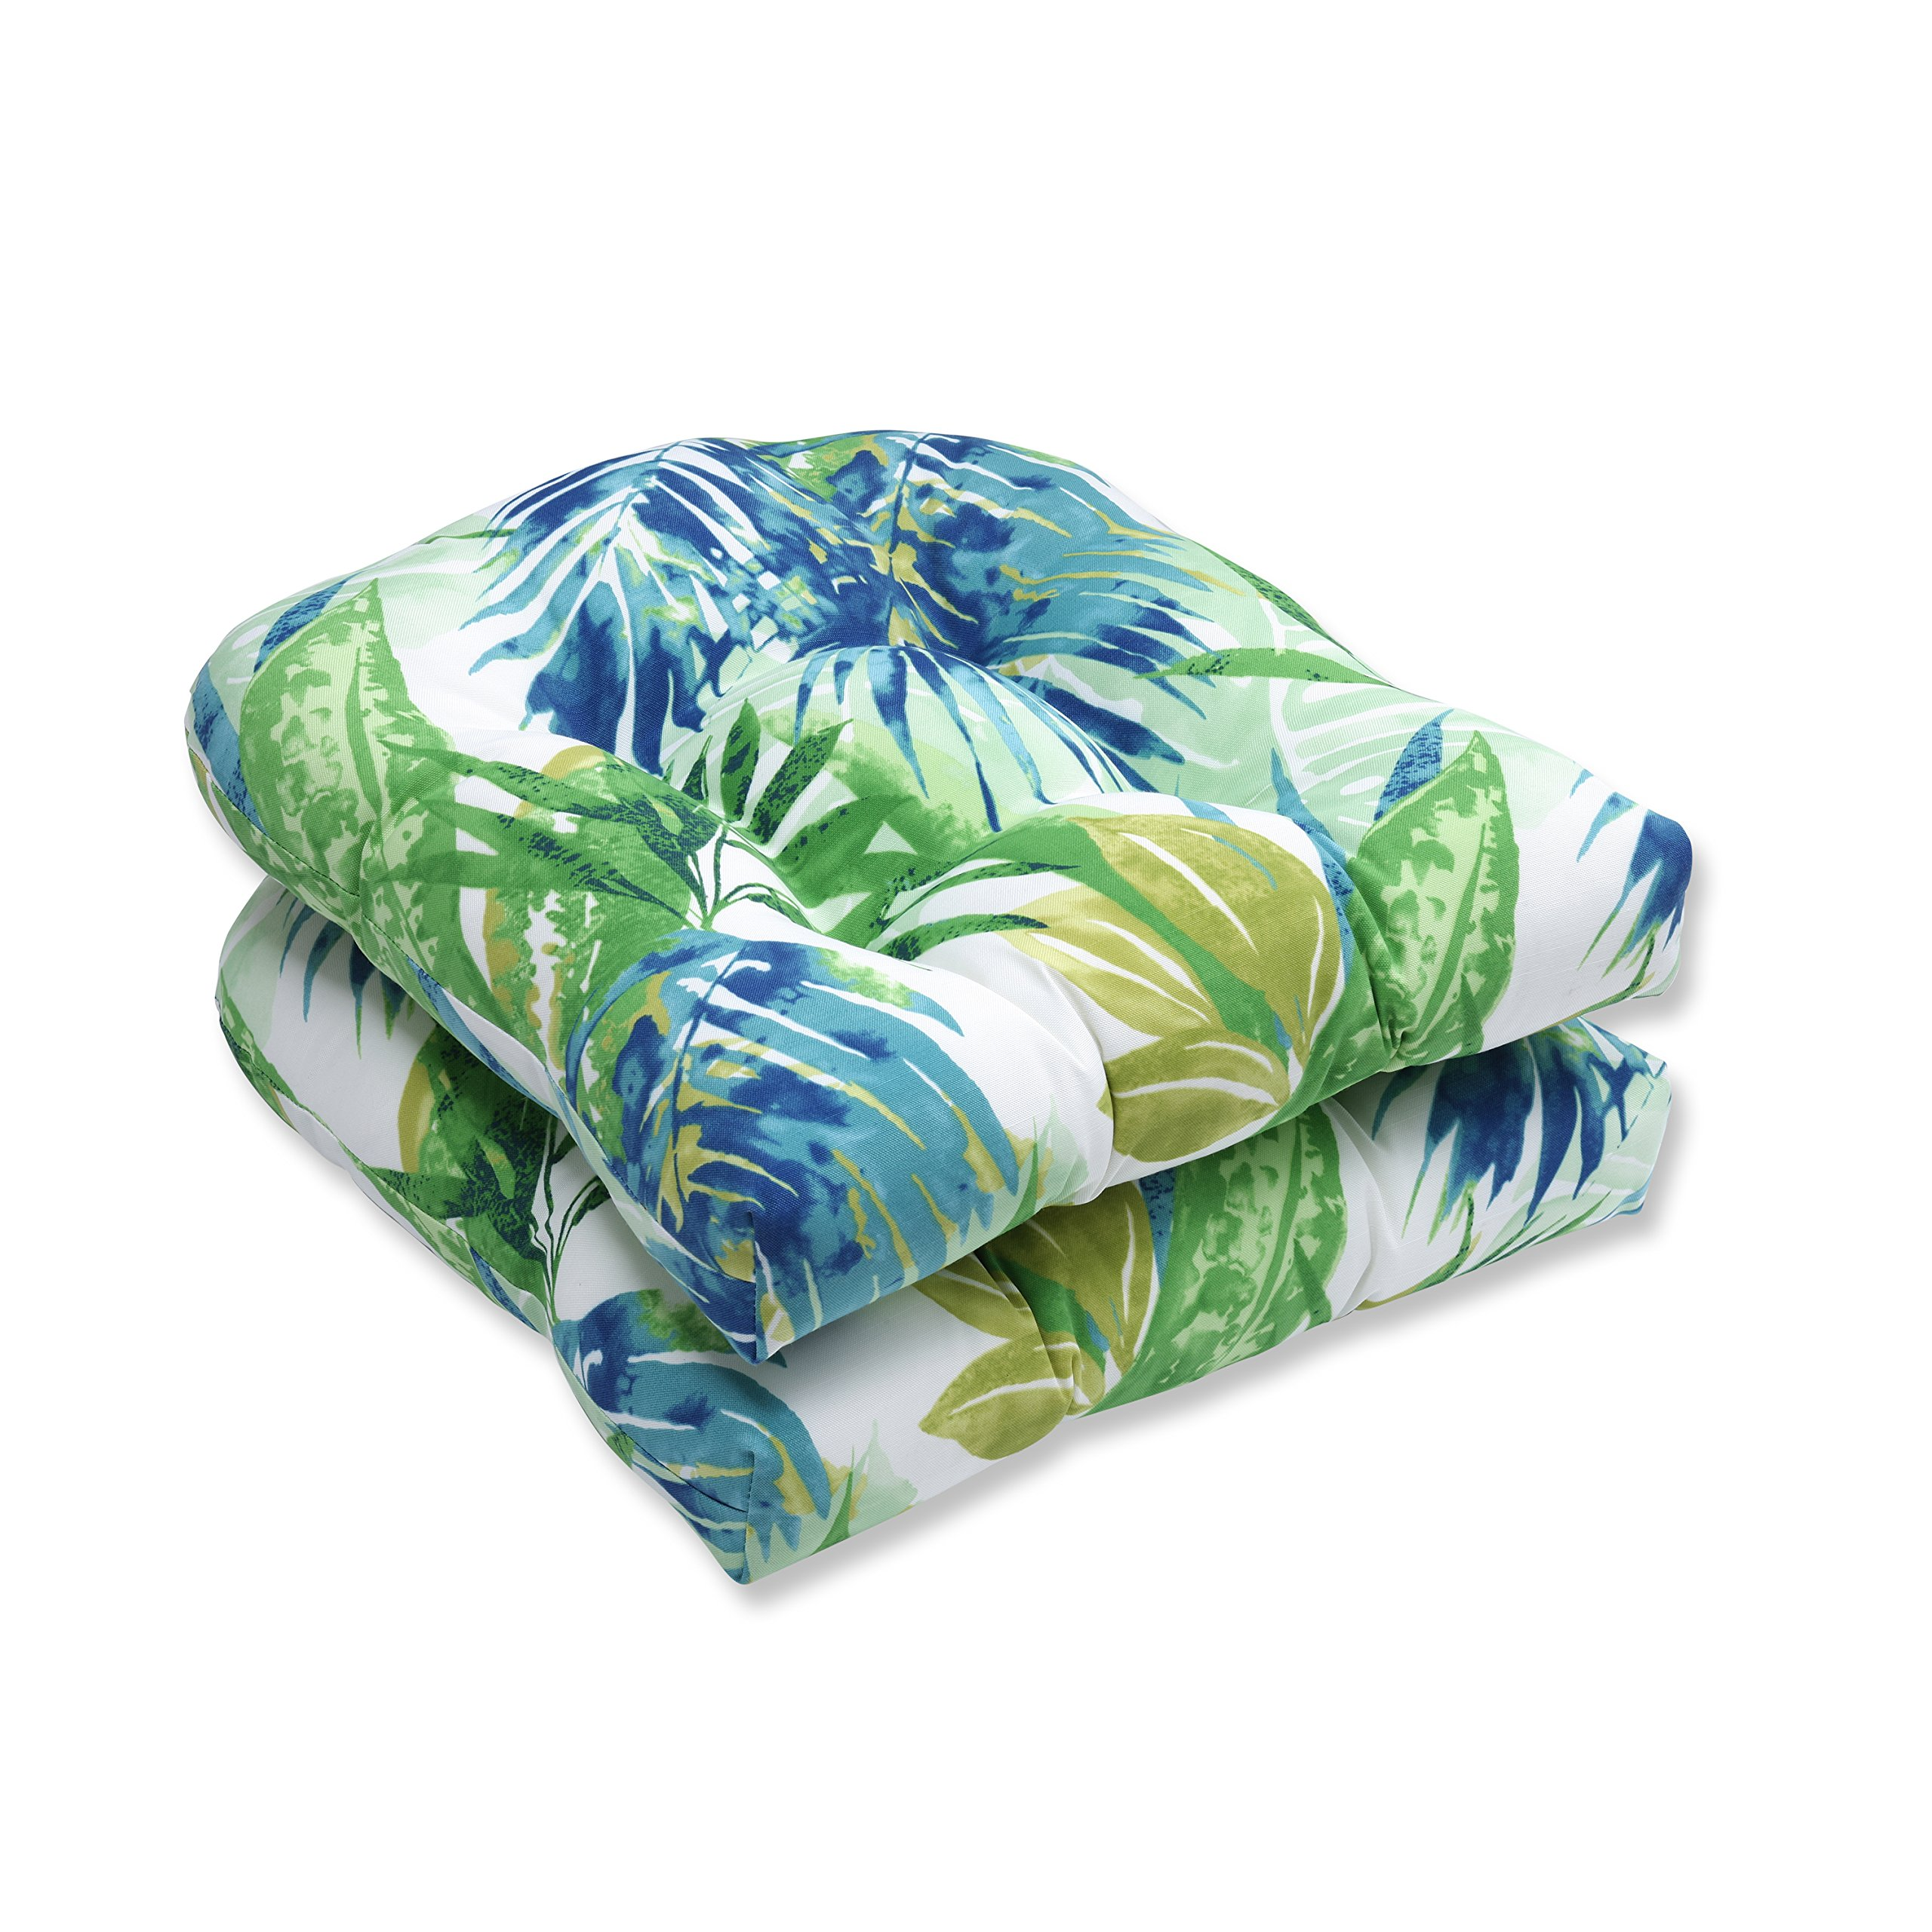 Pillow Perfect Outdoor/Indoor Soleil Wicker Seat Cushion, Set of 2 Blue/Green